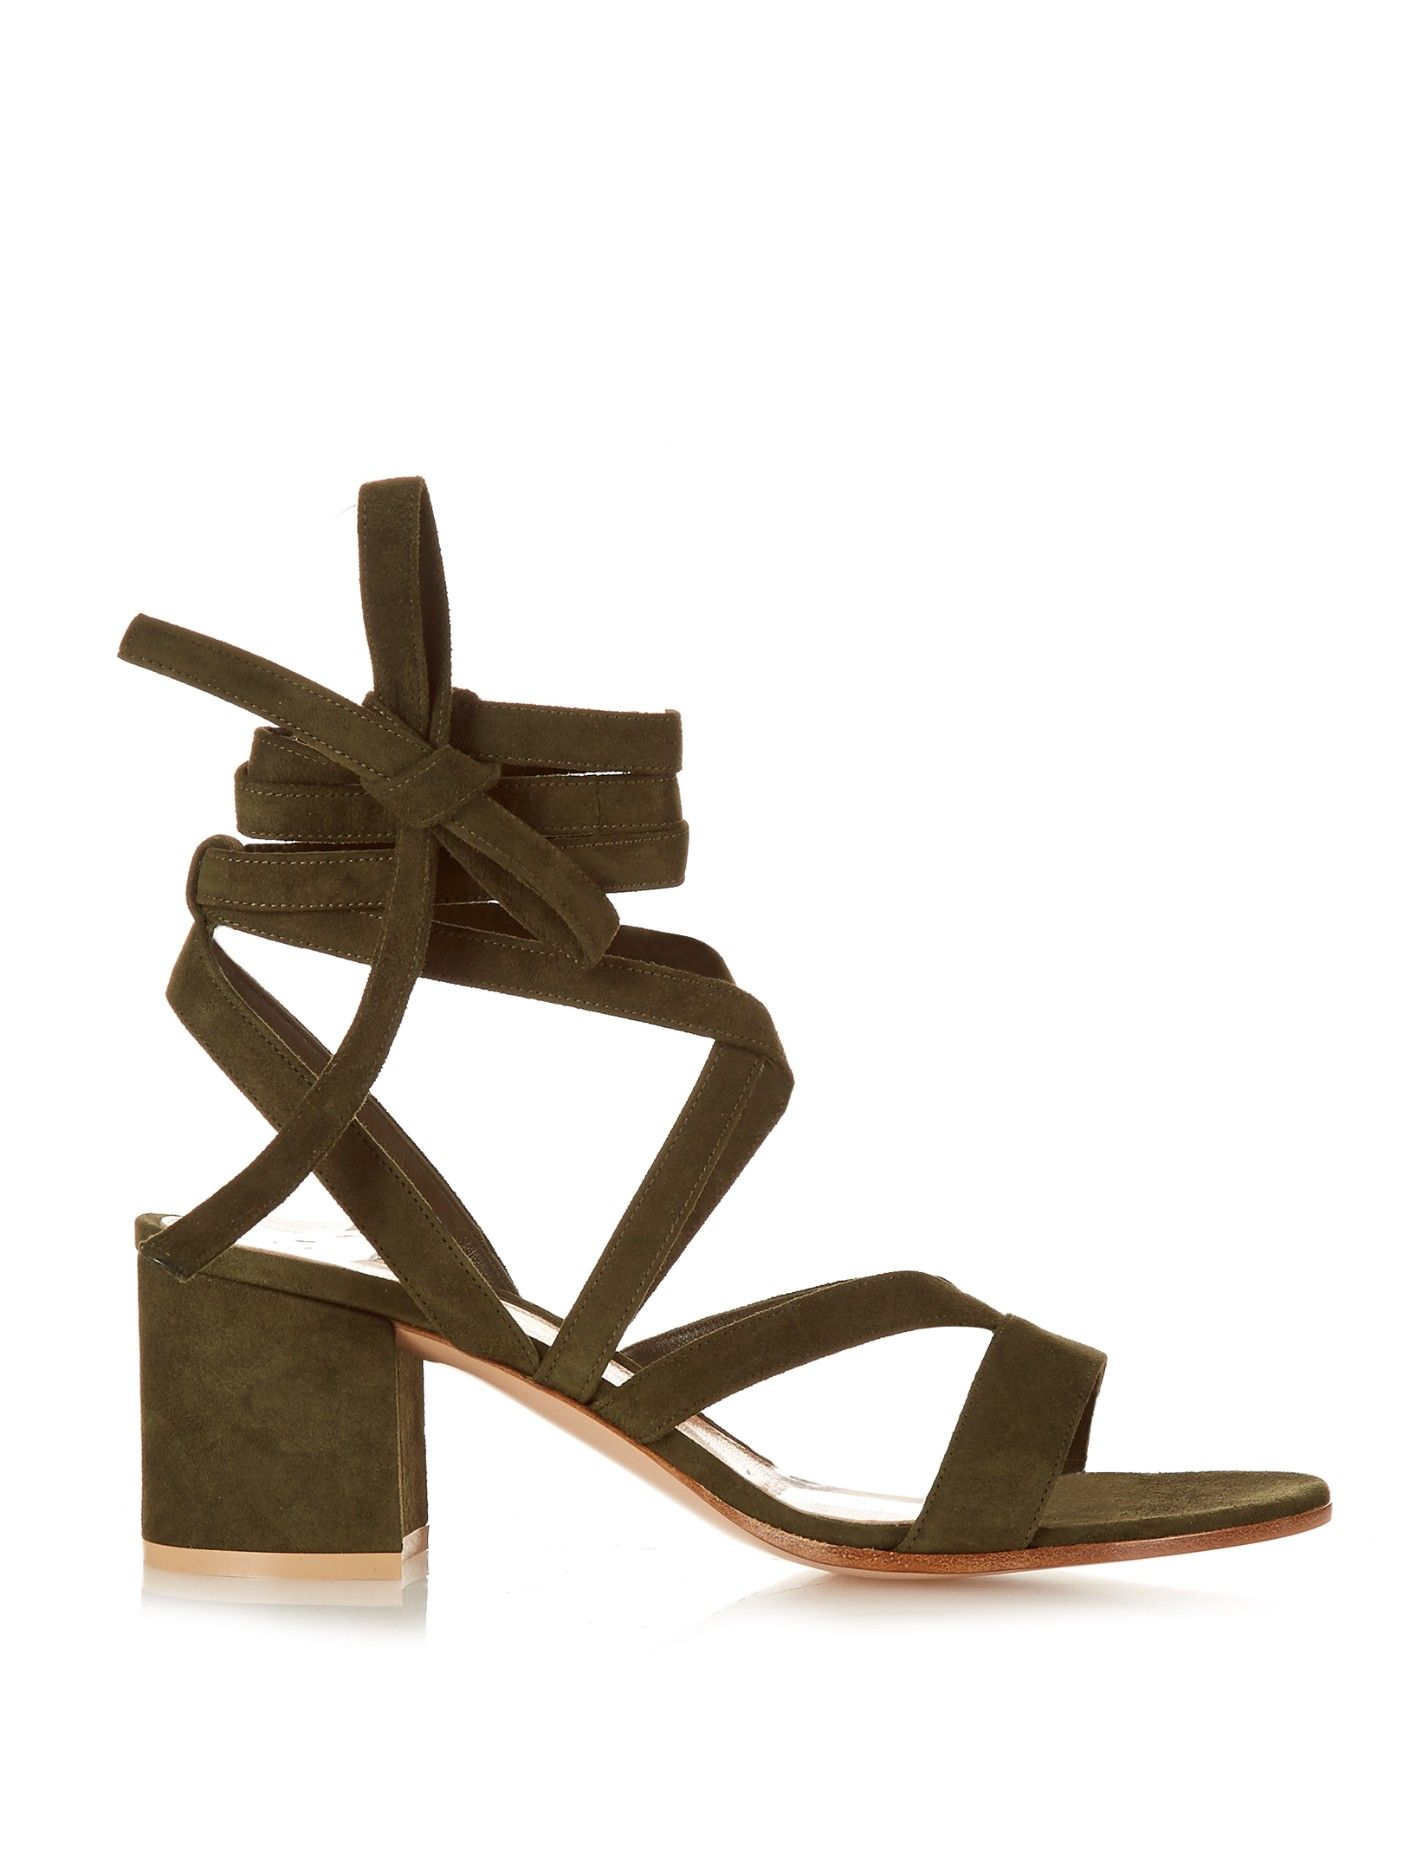 52b7dff8a08 Janis Low suede sandals